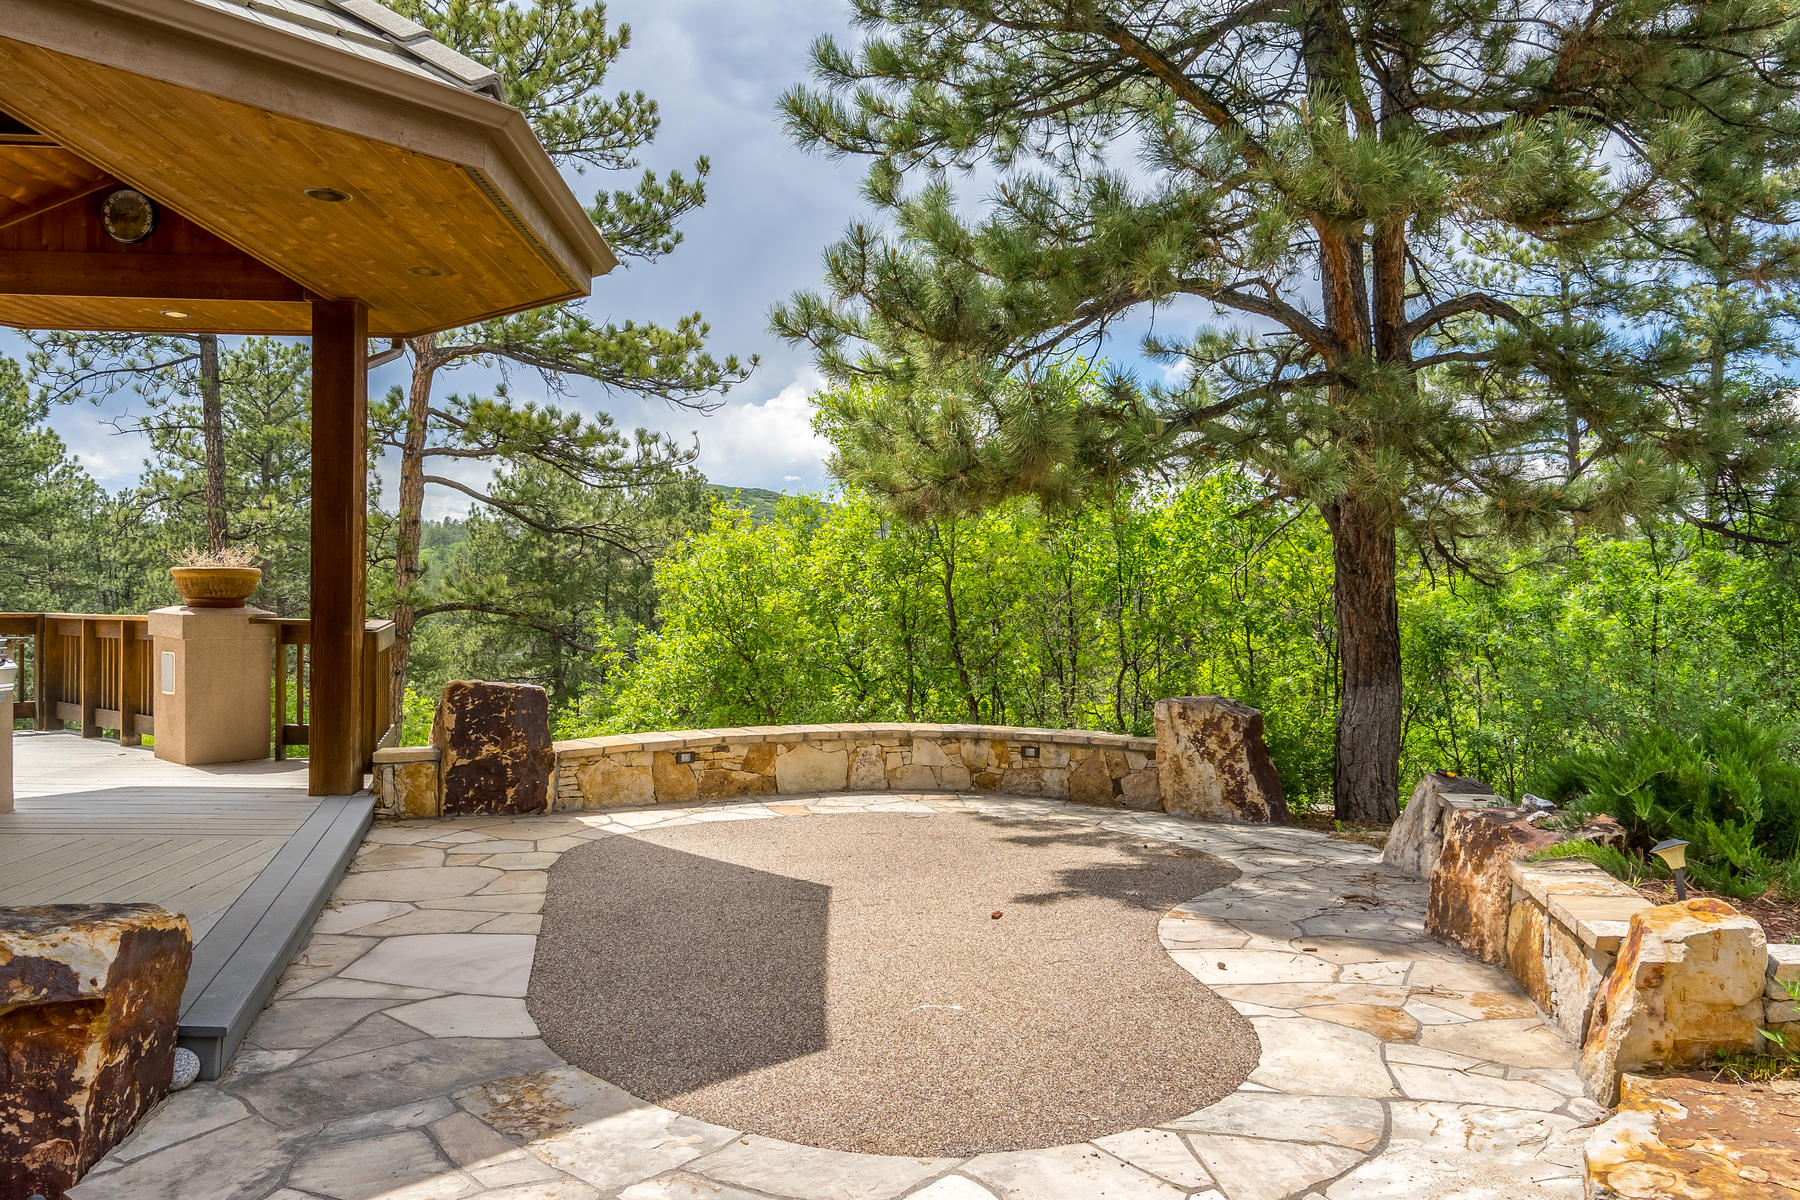 Additional photo for property listing at 244 Country Club Pkwy 244 Country Club Pkwy Castle Rock, Colorado 80108 United States